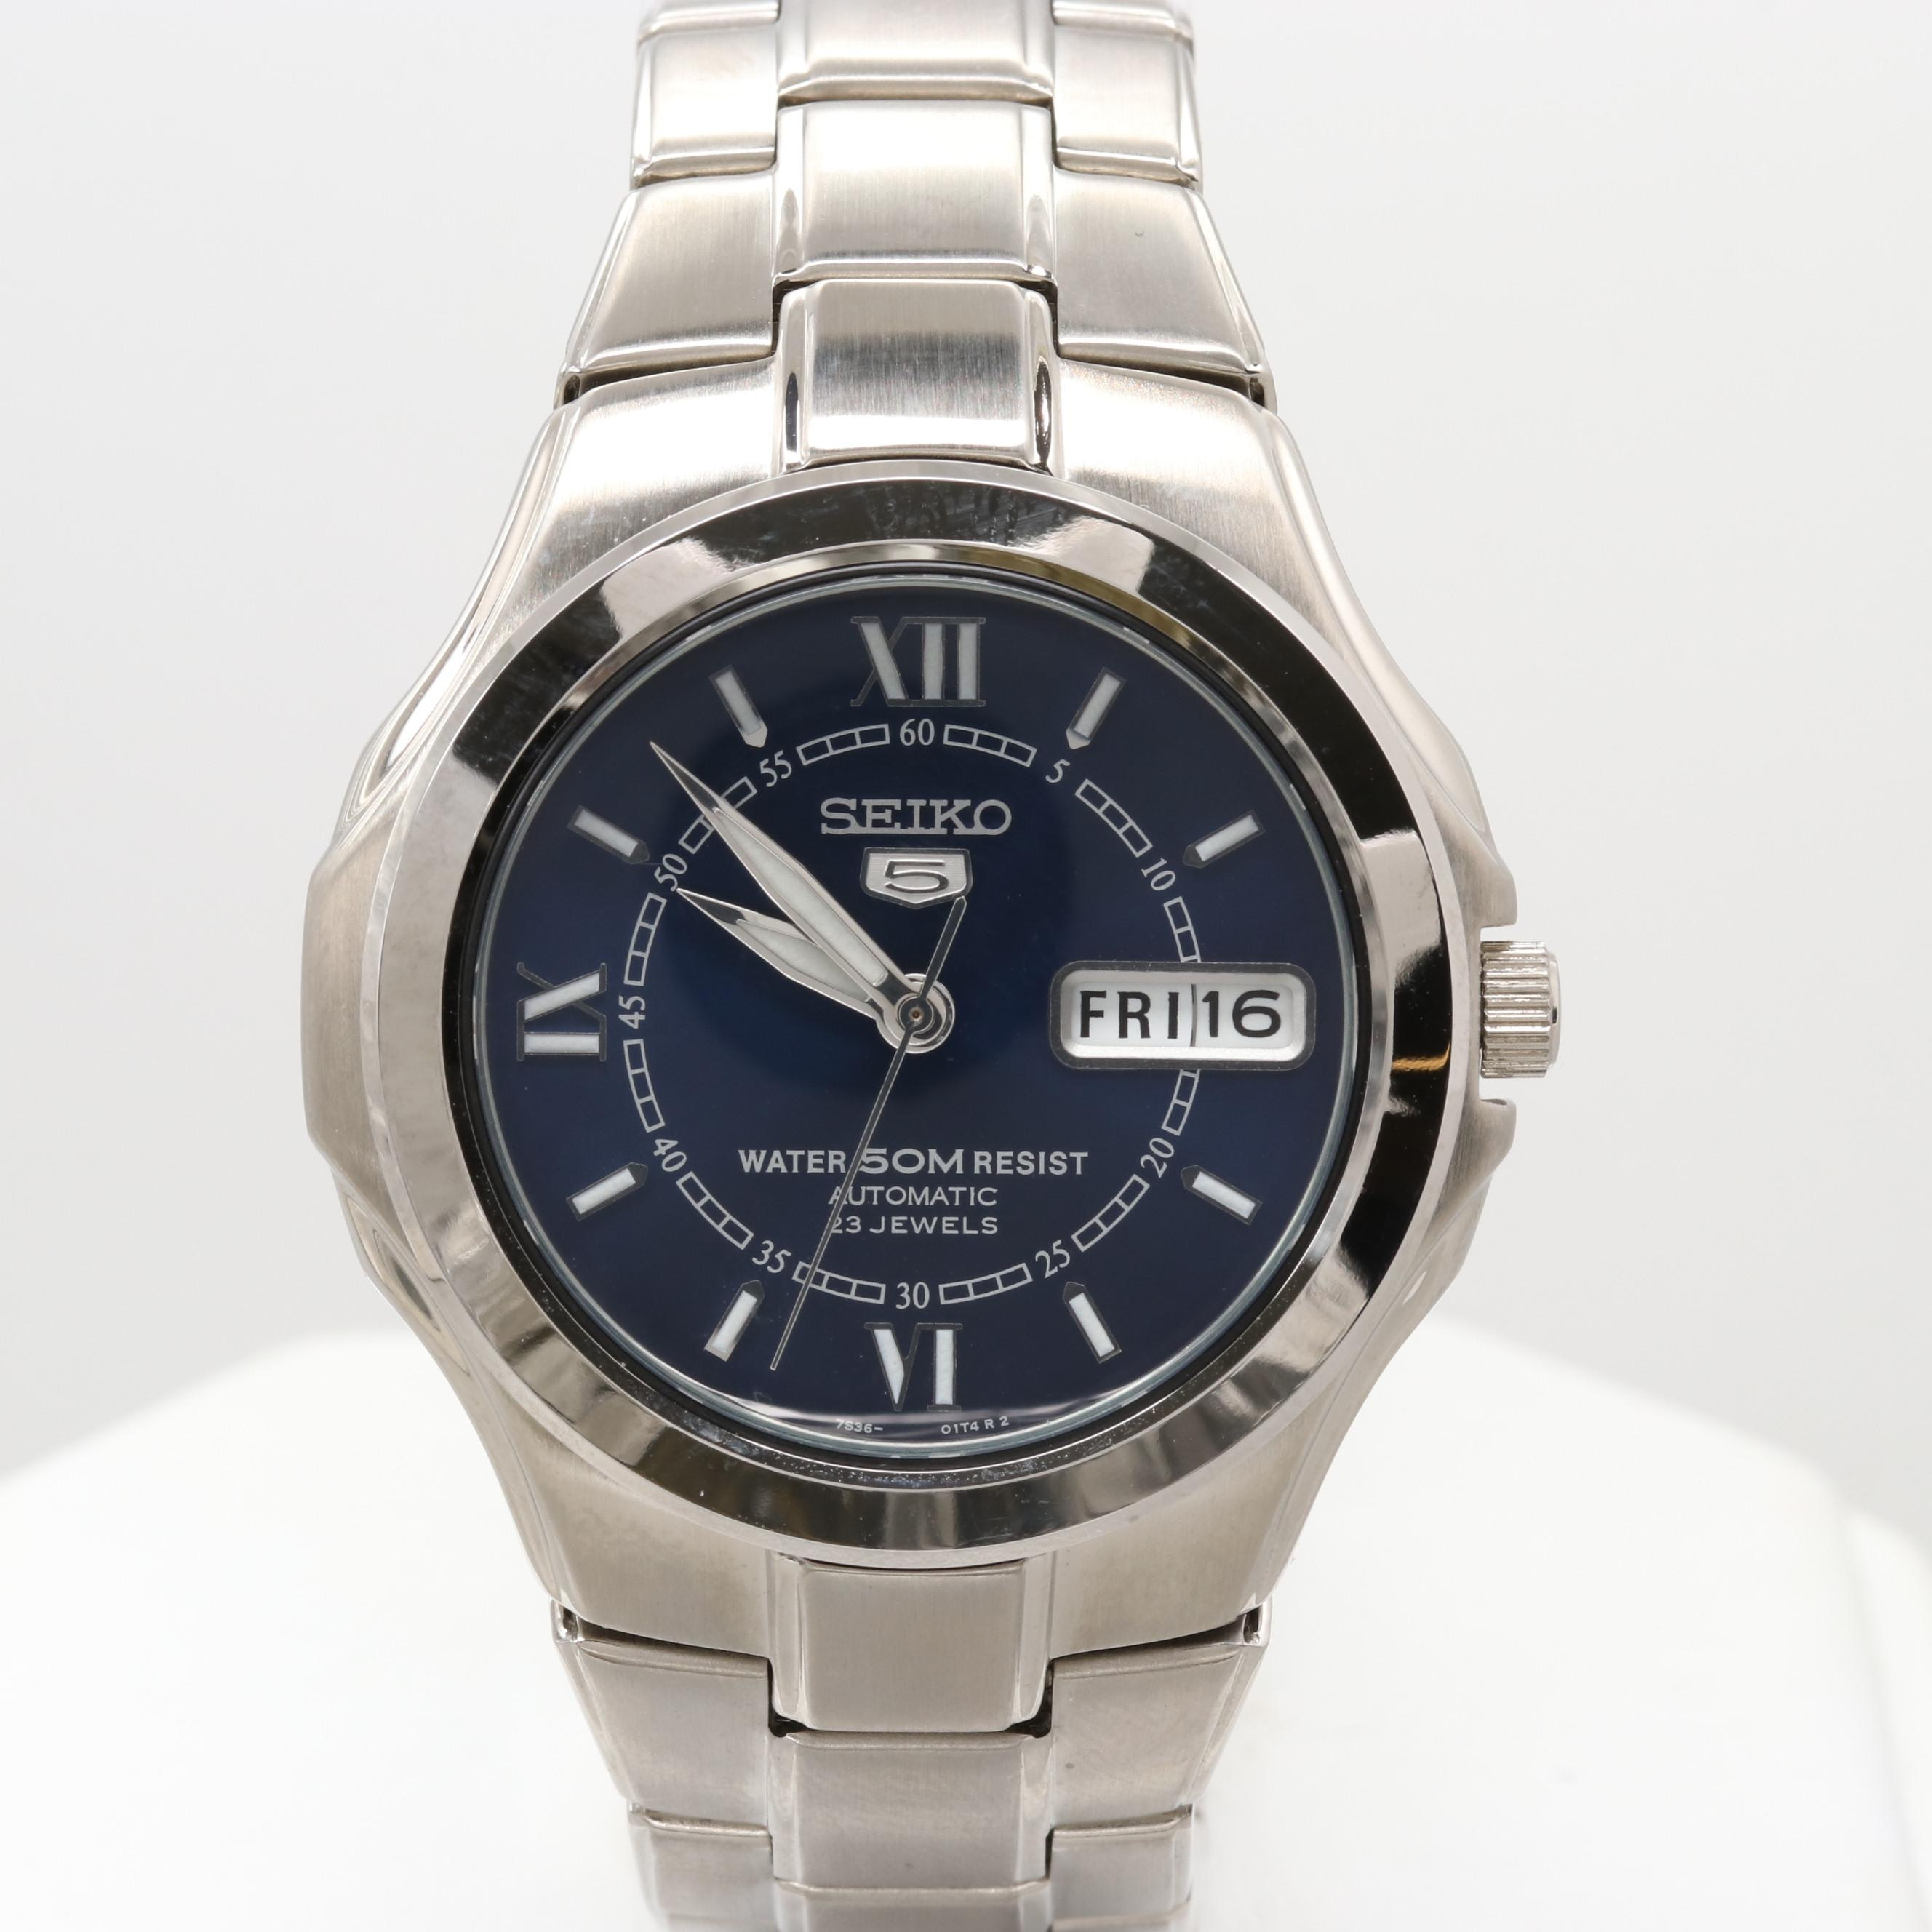 Seiko 5 Stainless Steel Wristwatch With Day/Date Window